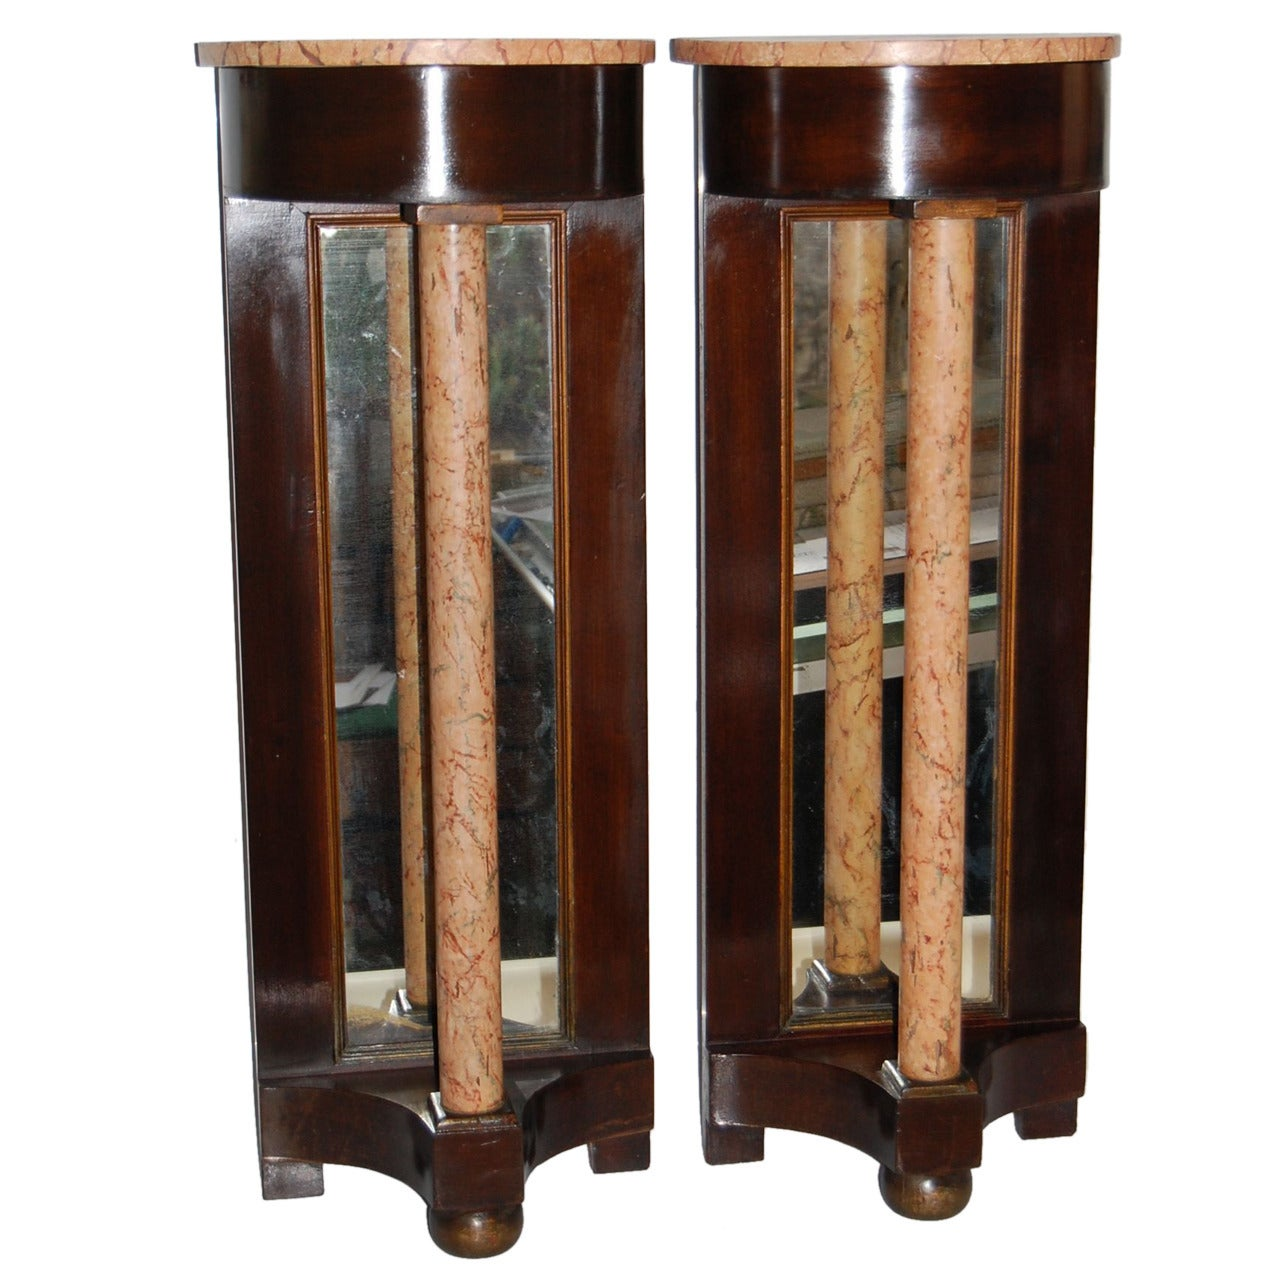 Pair of Early 20th Century Petite Regency Style Mahogany Demilune Console Tables